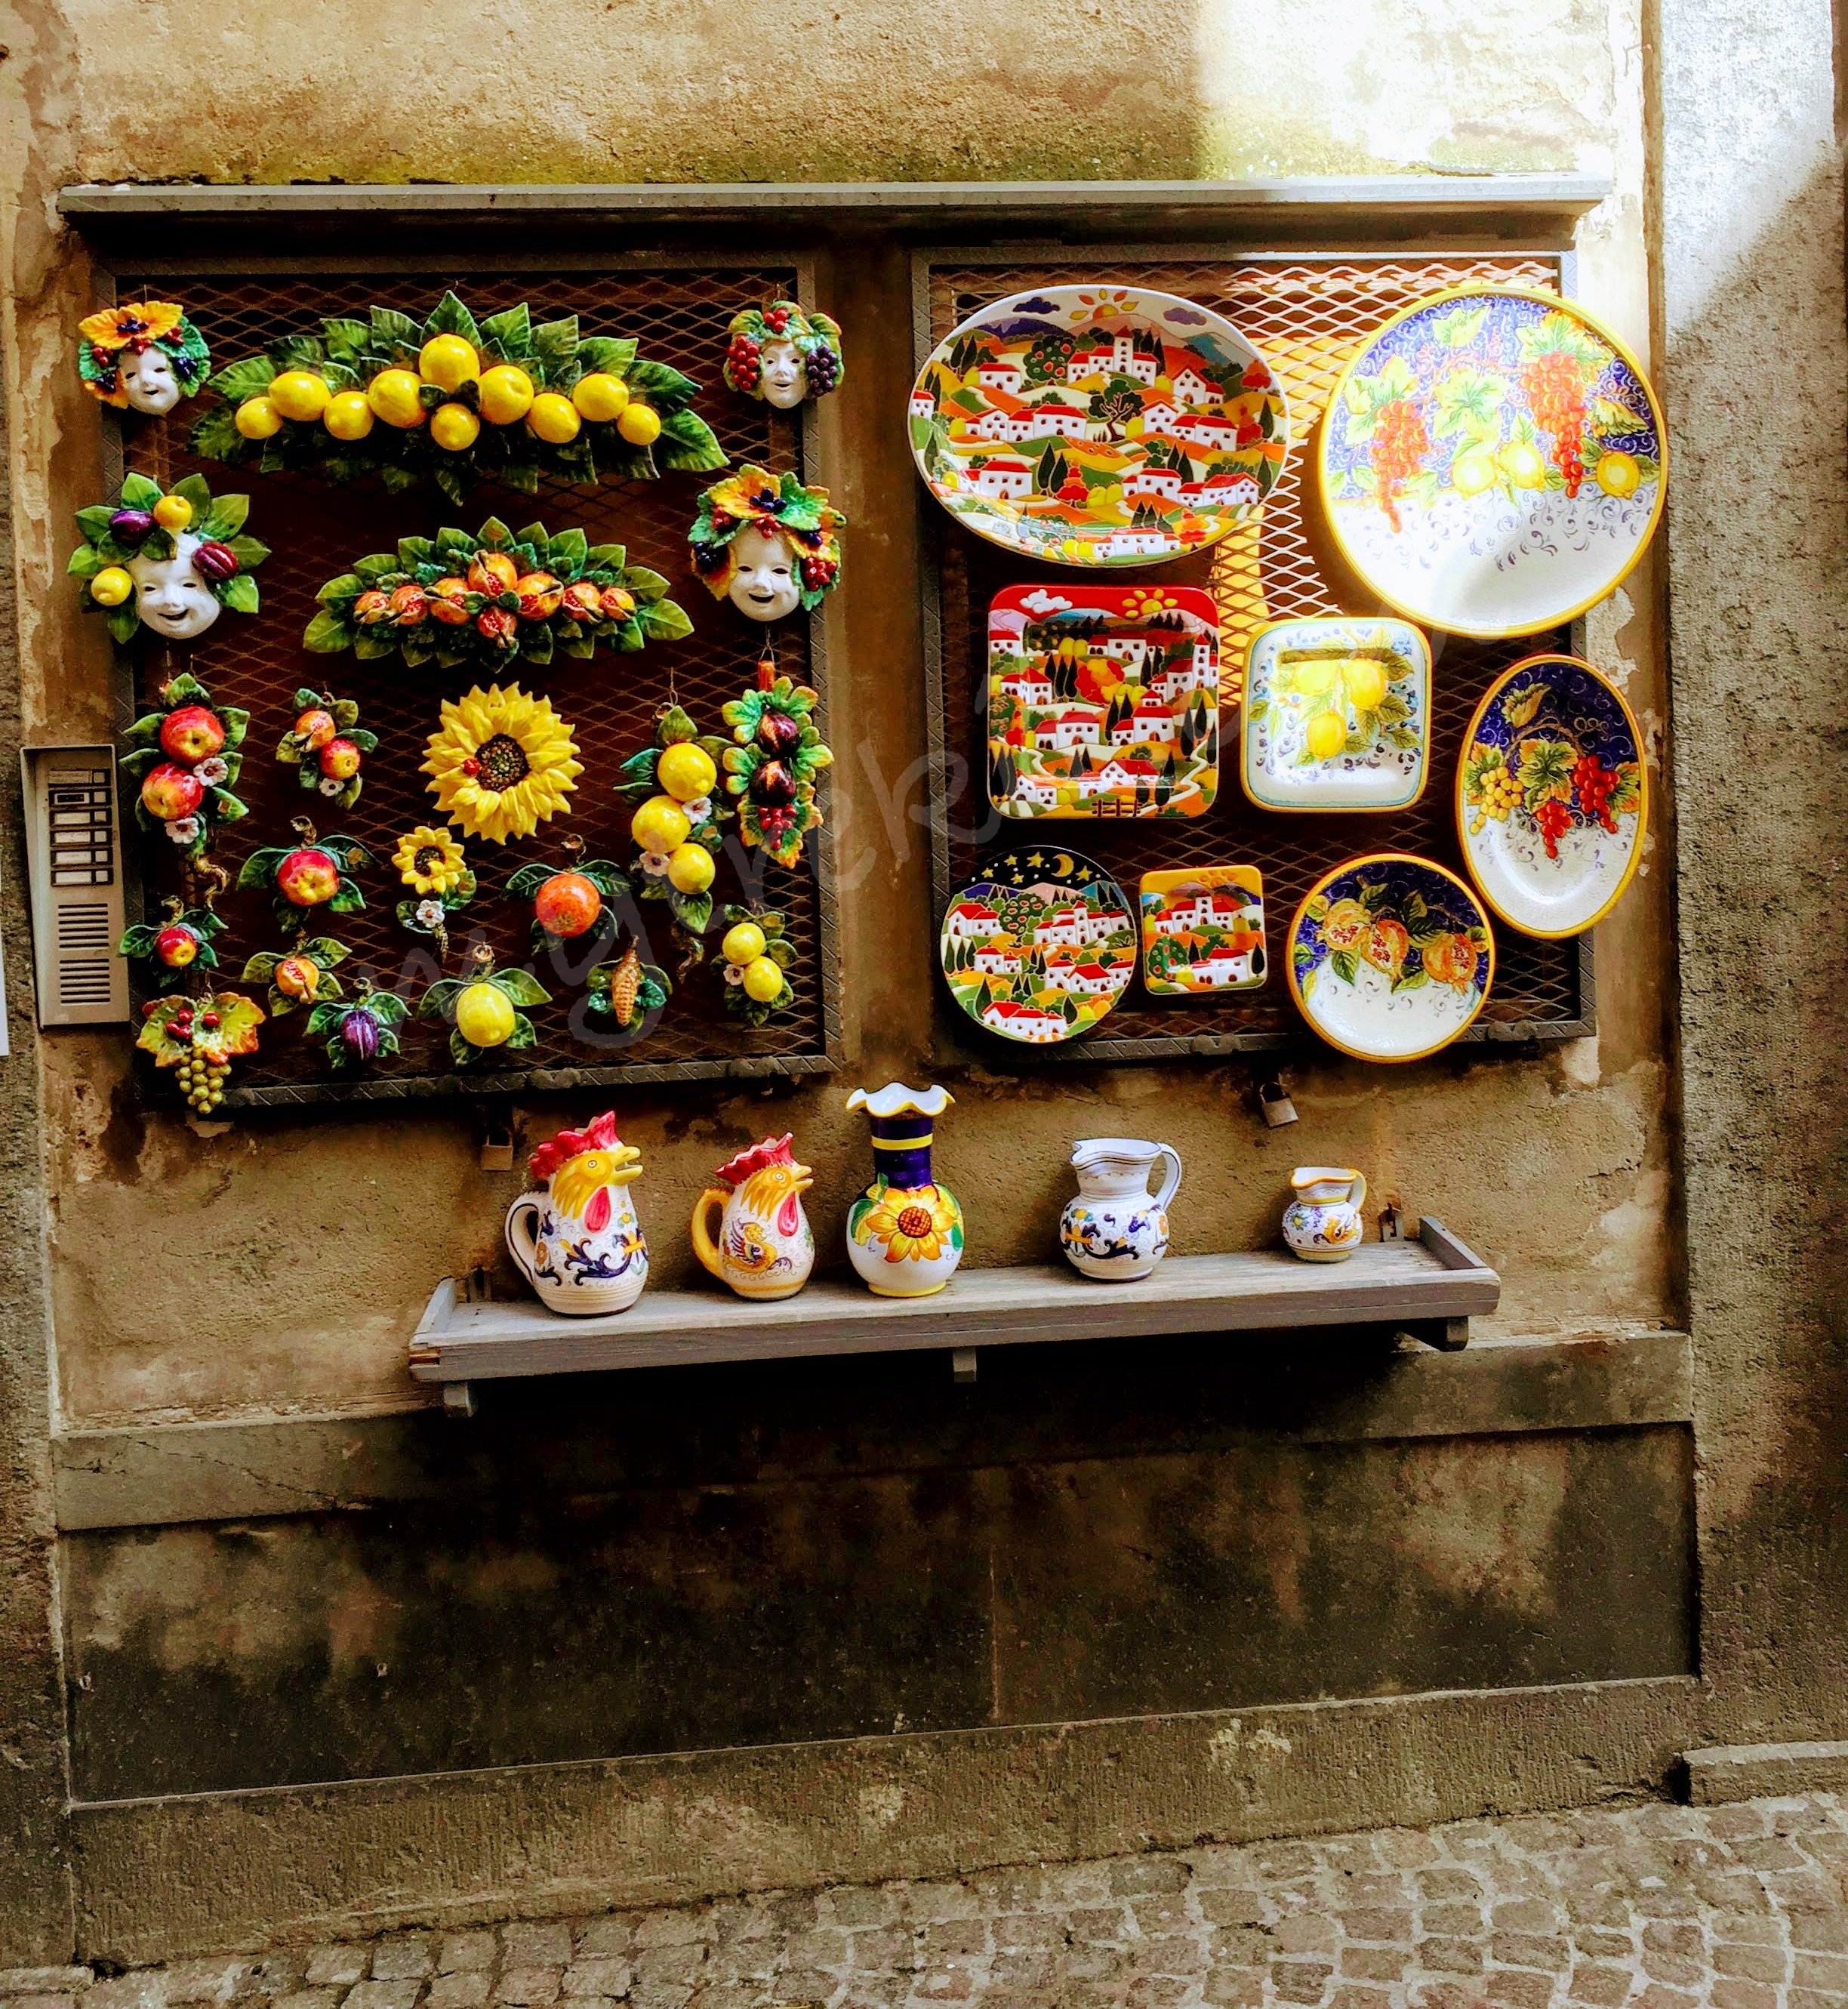 Orvieto's ceramic tradition is on display in several shops.